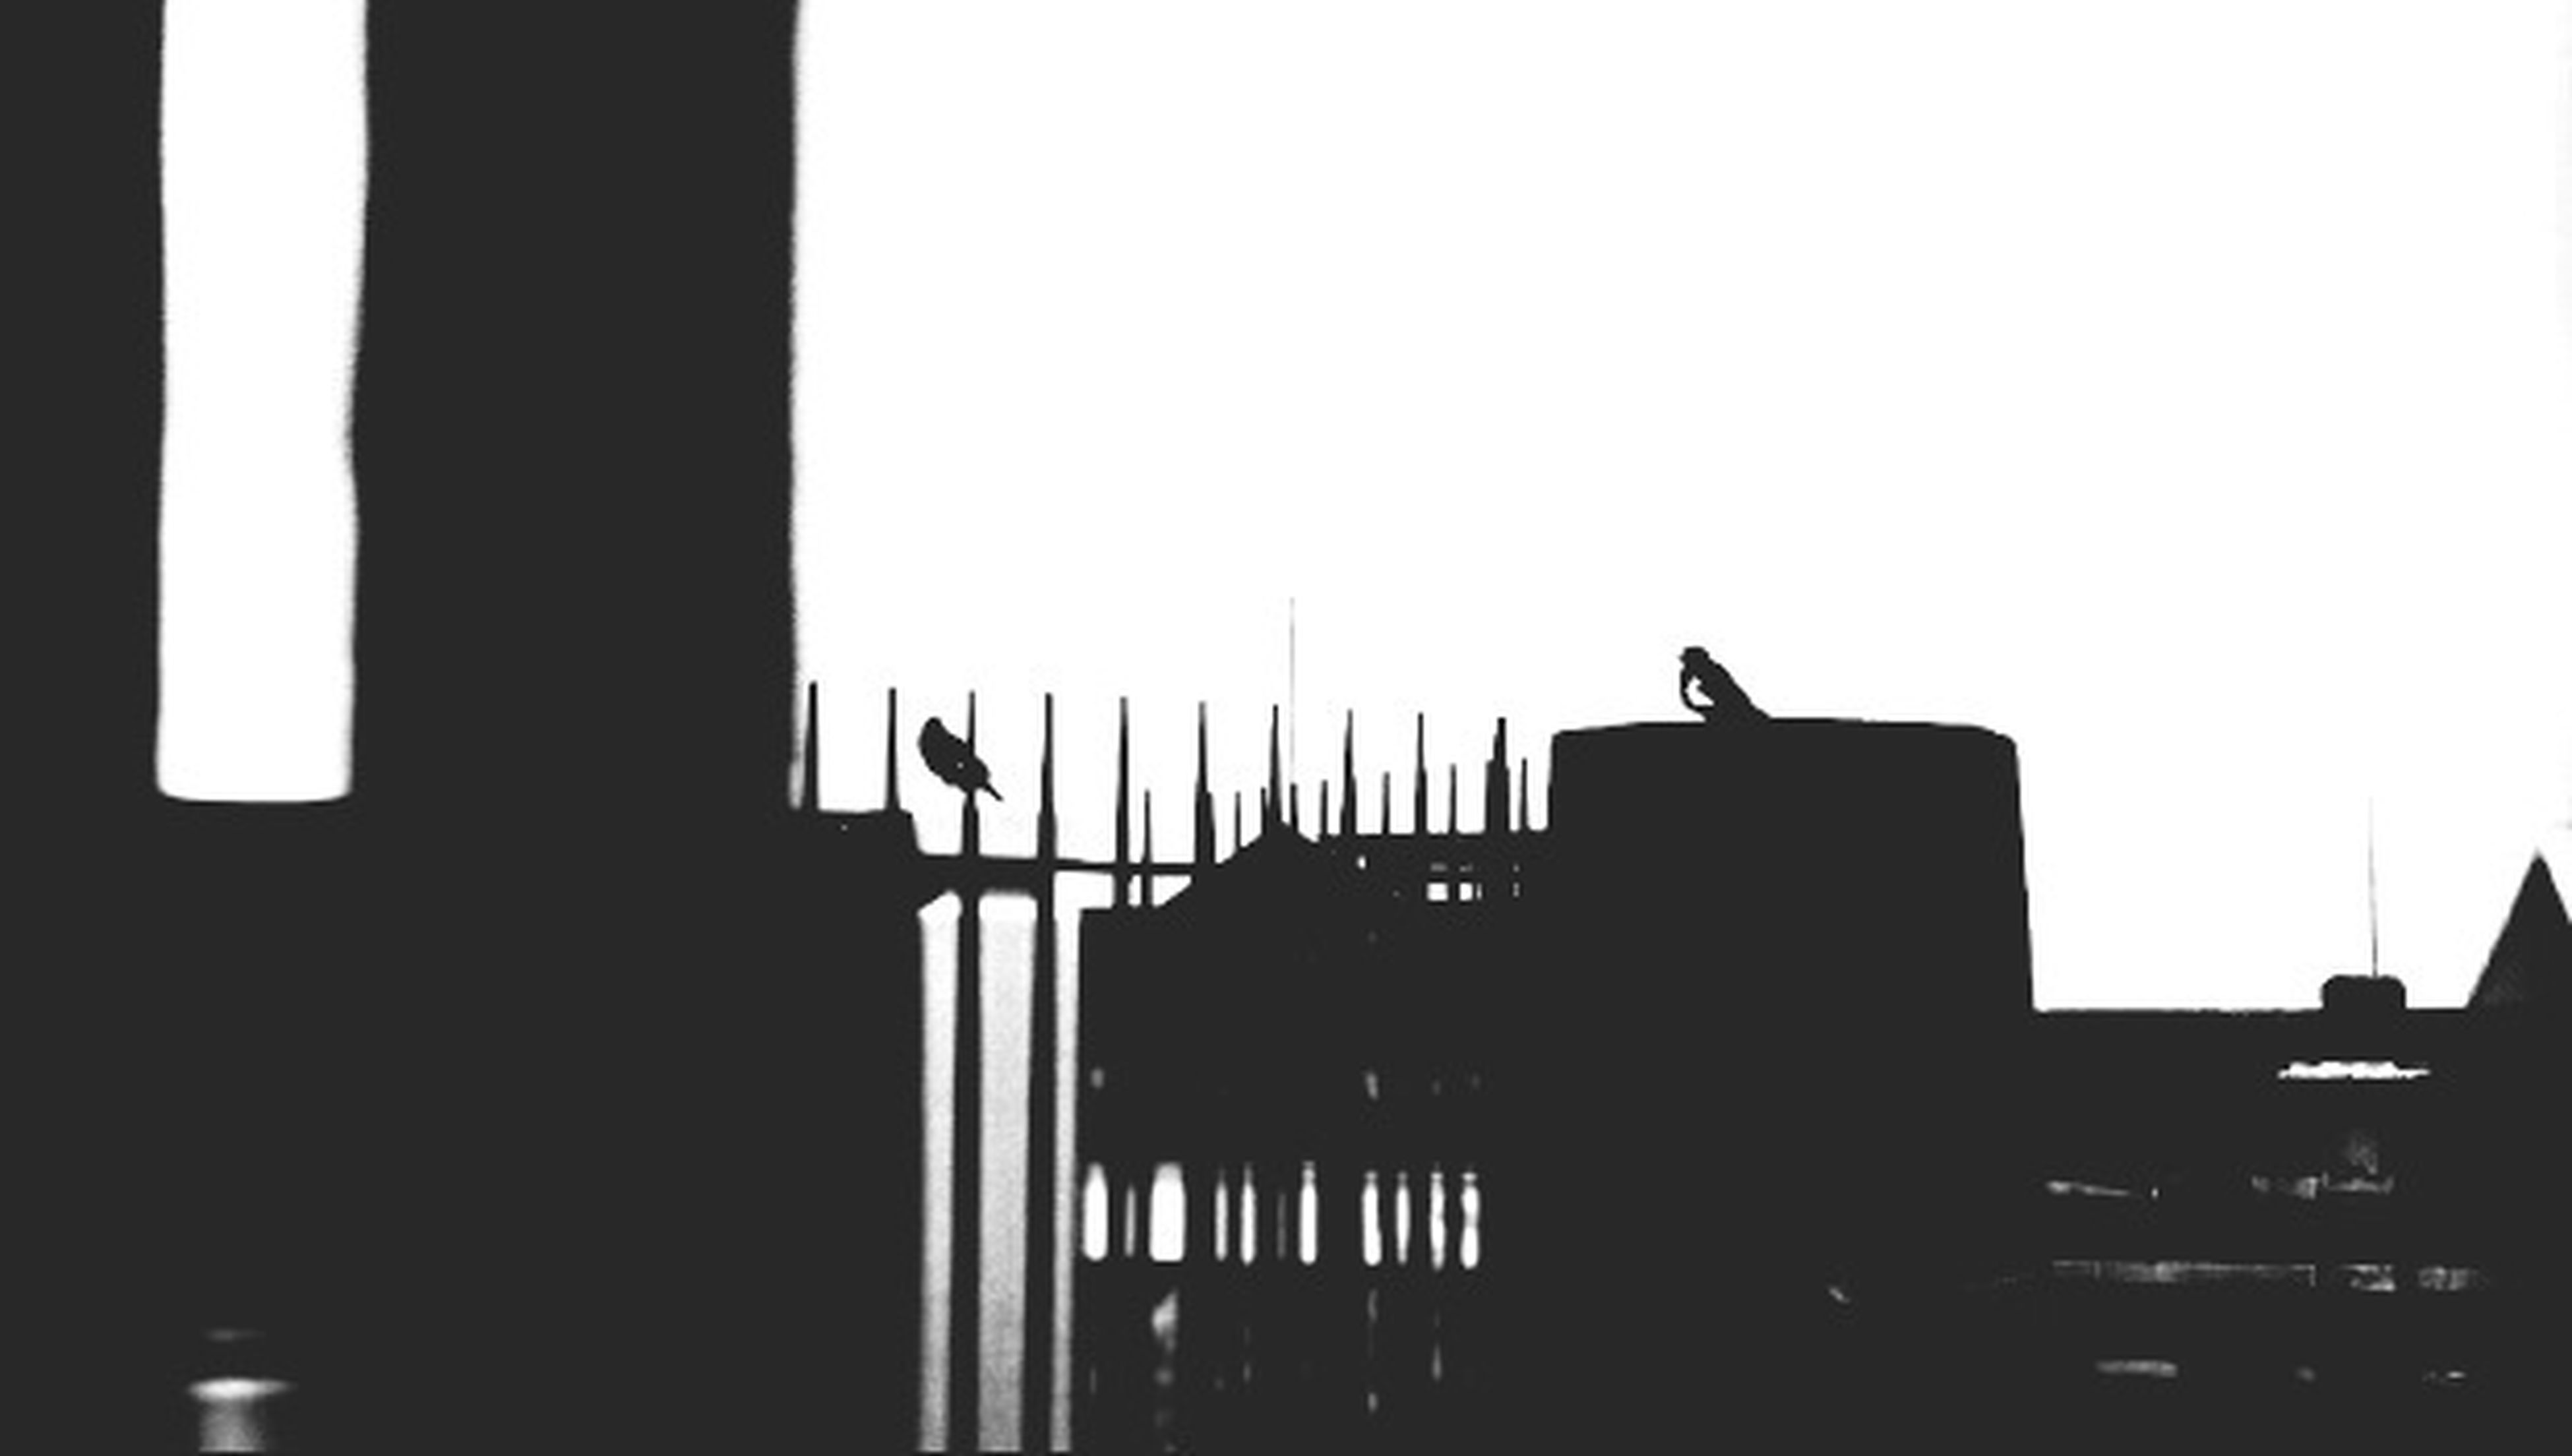 silhouette, architecture, built structure, building exterior, clear sky, copy space, low angle view, bird, outline, sunset, dusk, building, sky, city, outdoors, animal themes, dark, high section, street light, residential building